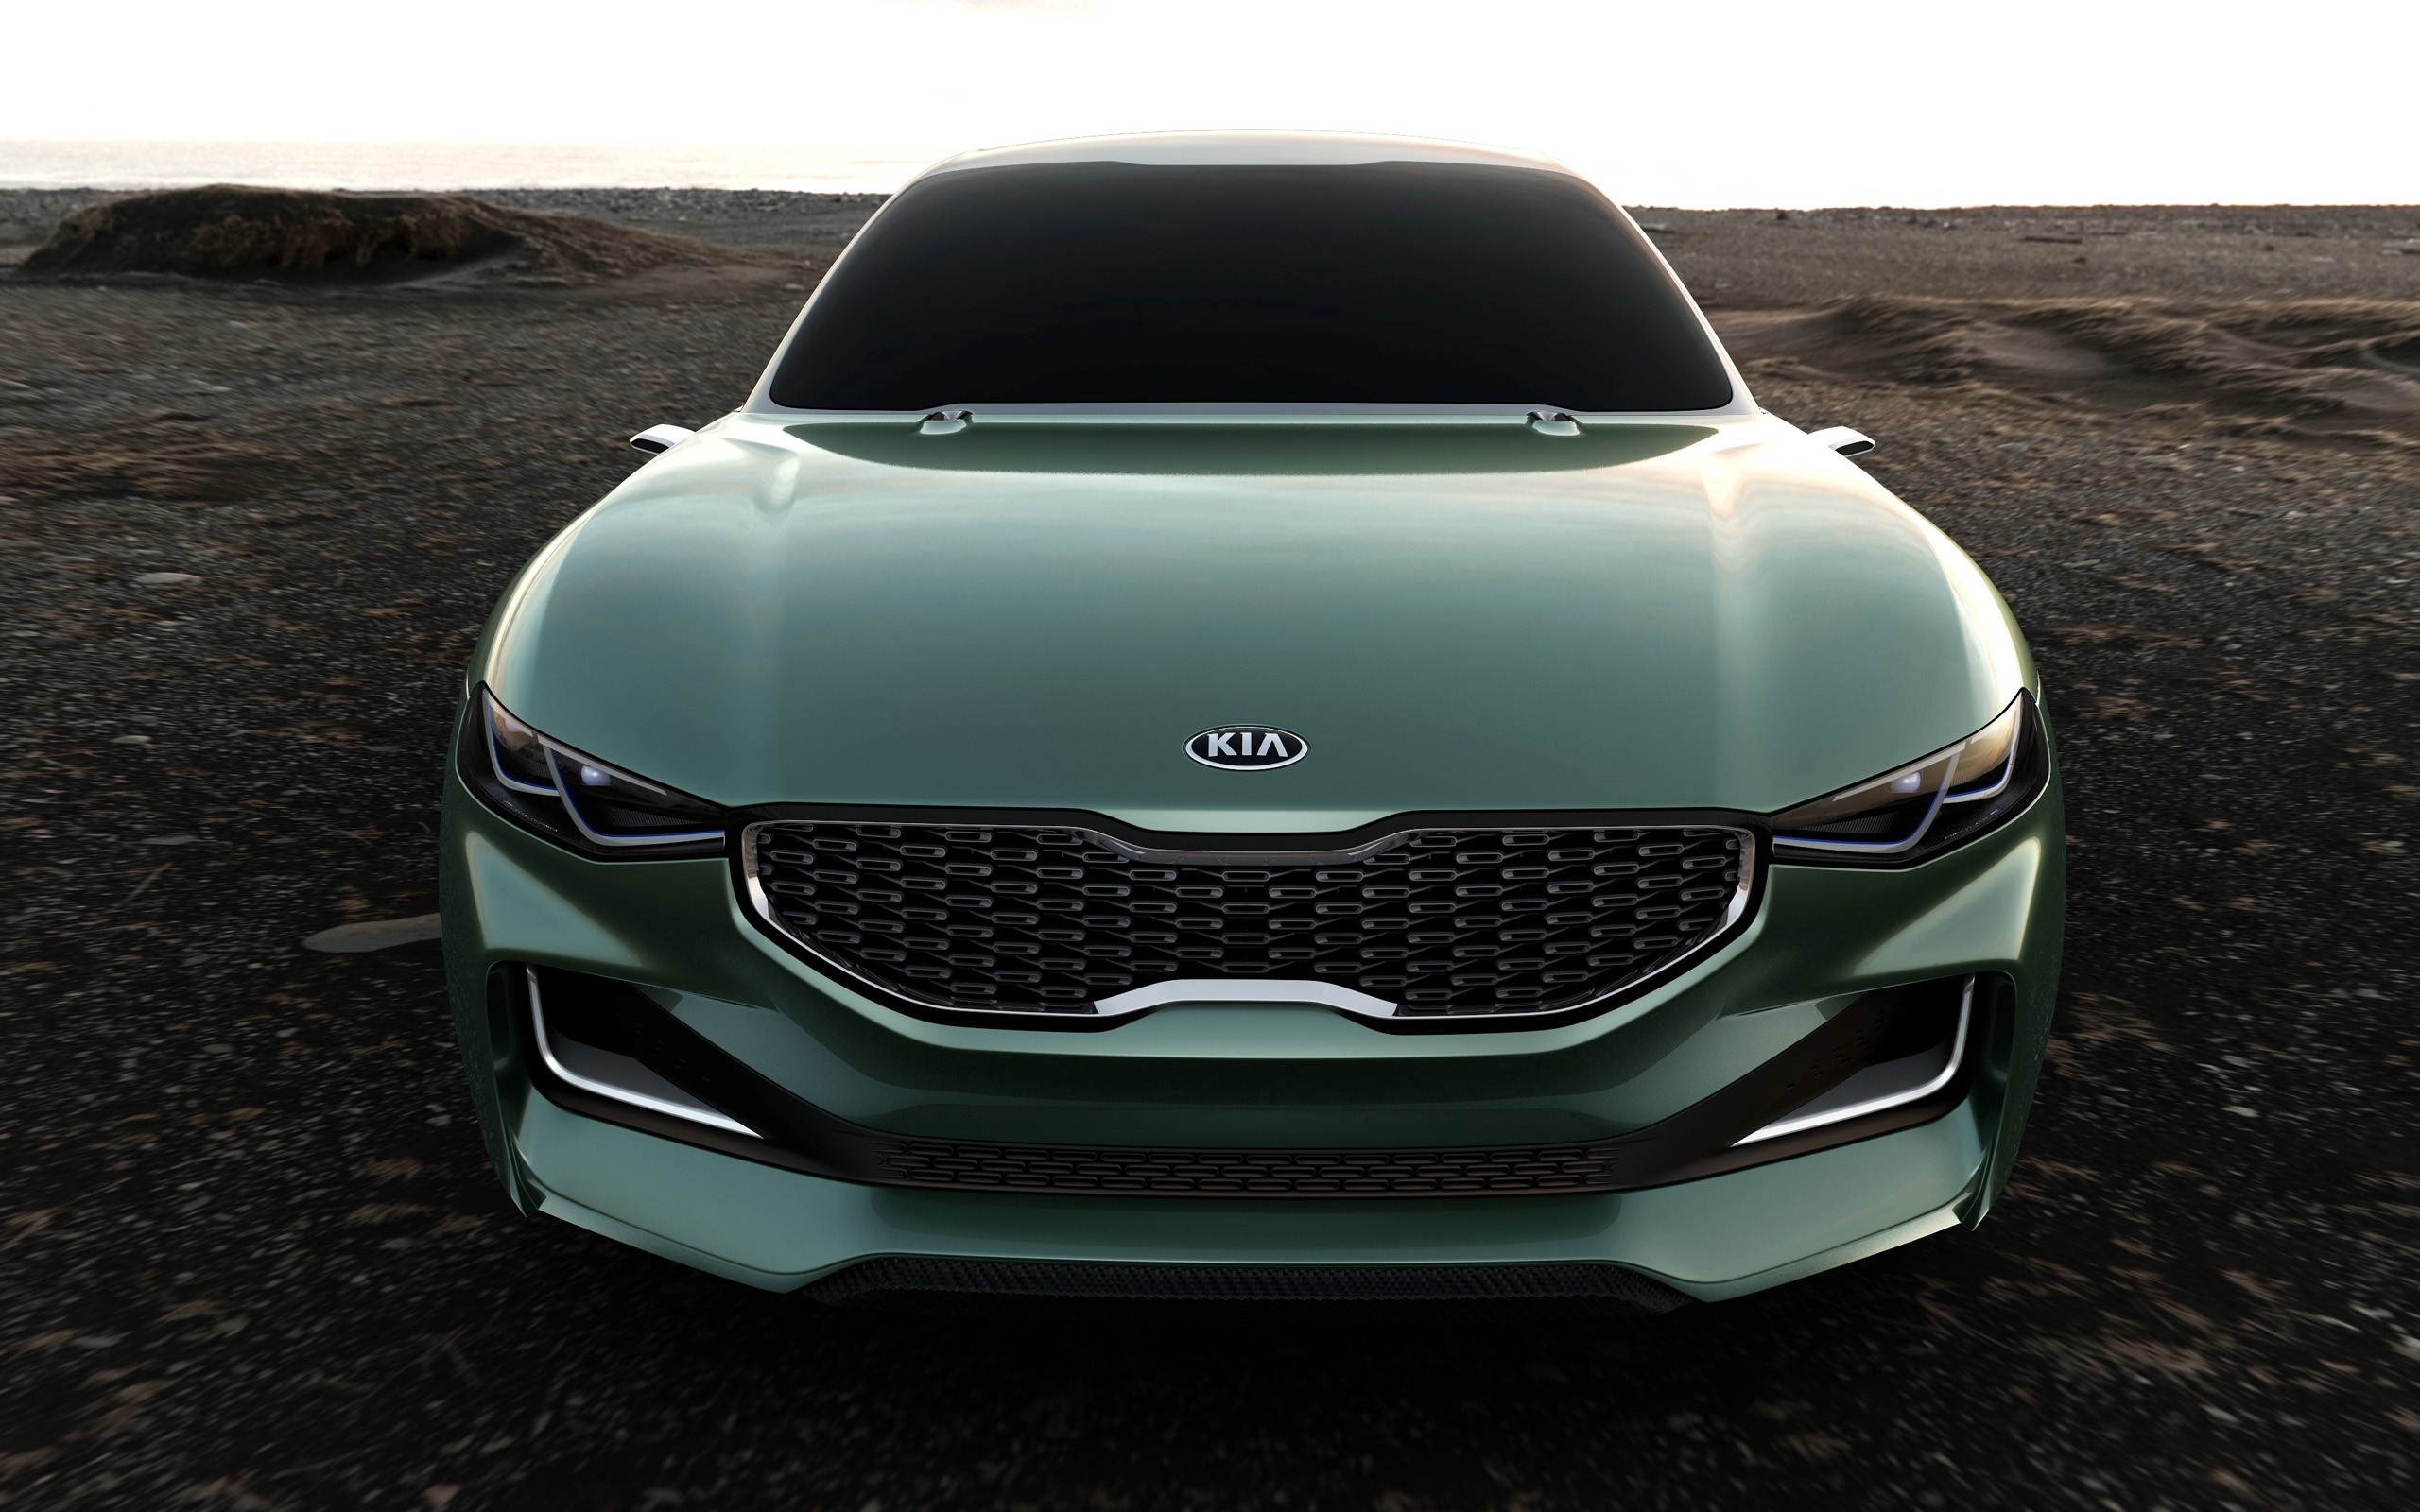 2015 Kia Novo Concept Wallpaper Hd Car Wallpapers Id 5269